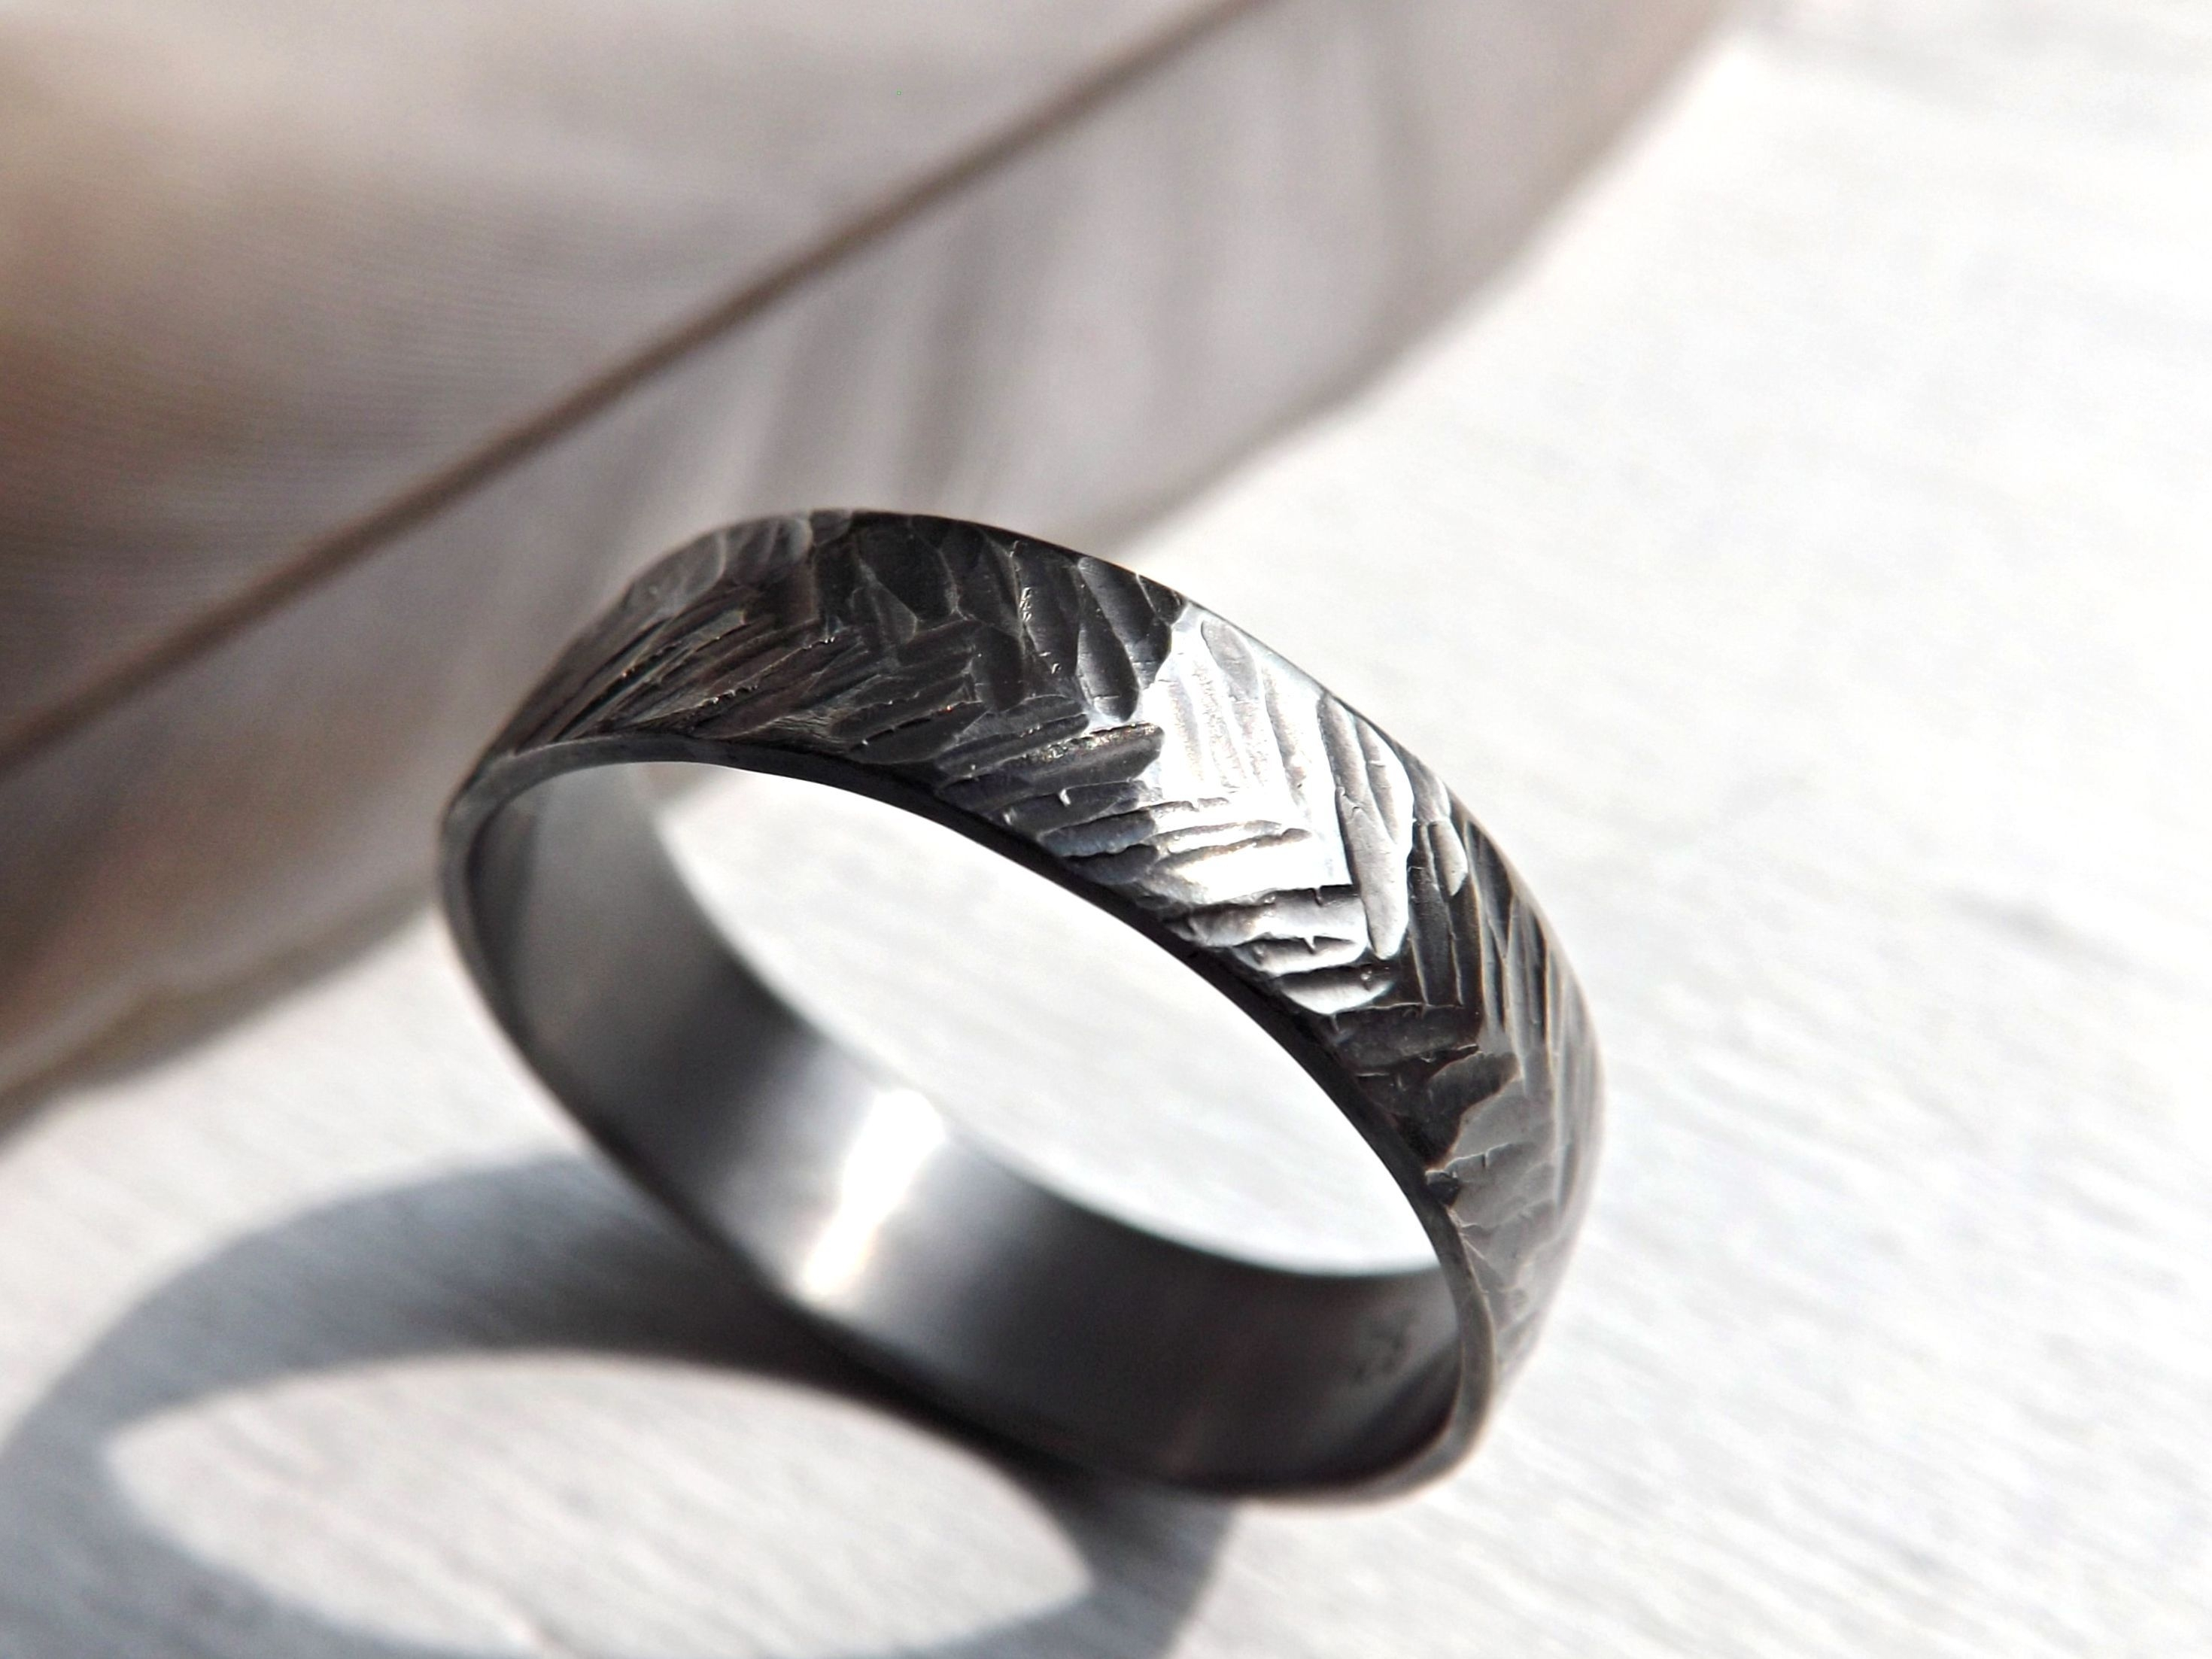 Buy A Handmade Chevron Wedding Ring Silver, Sterling Silver Ring In Most Recent Silver Chevron Rings (View 9 of 15)